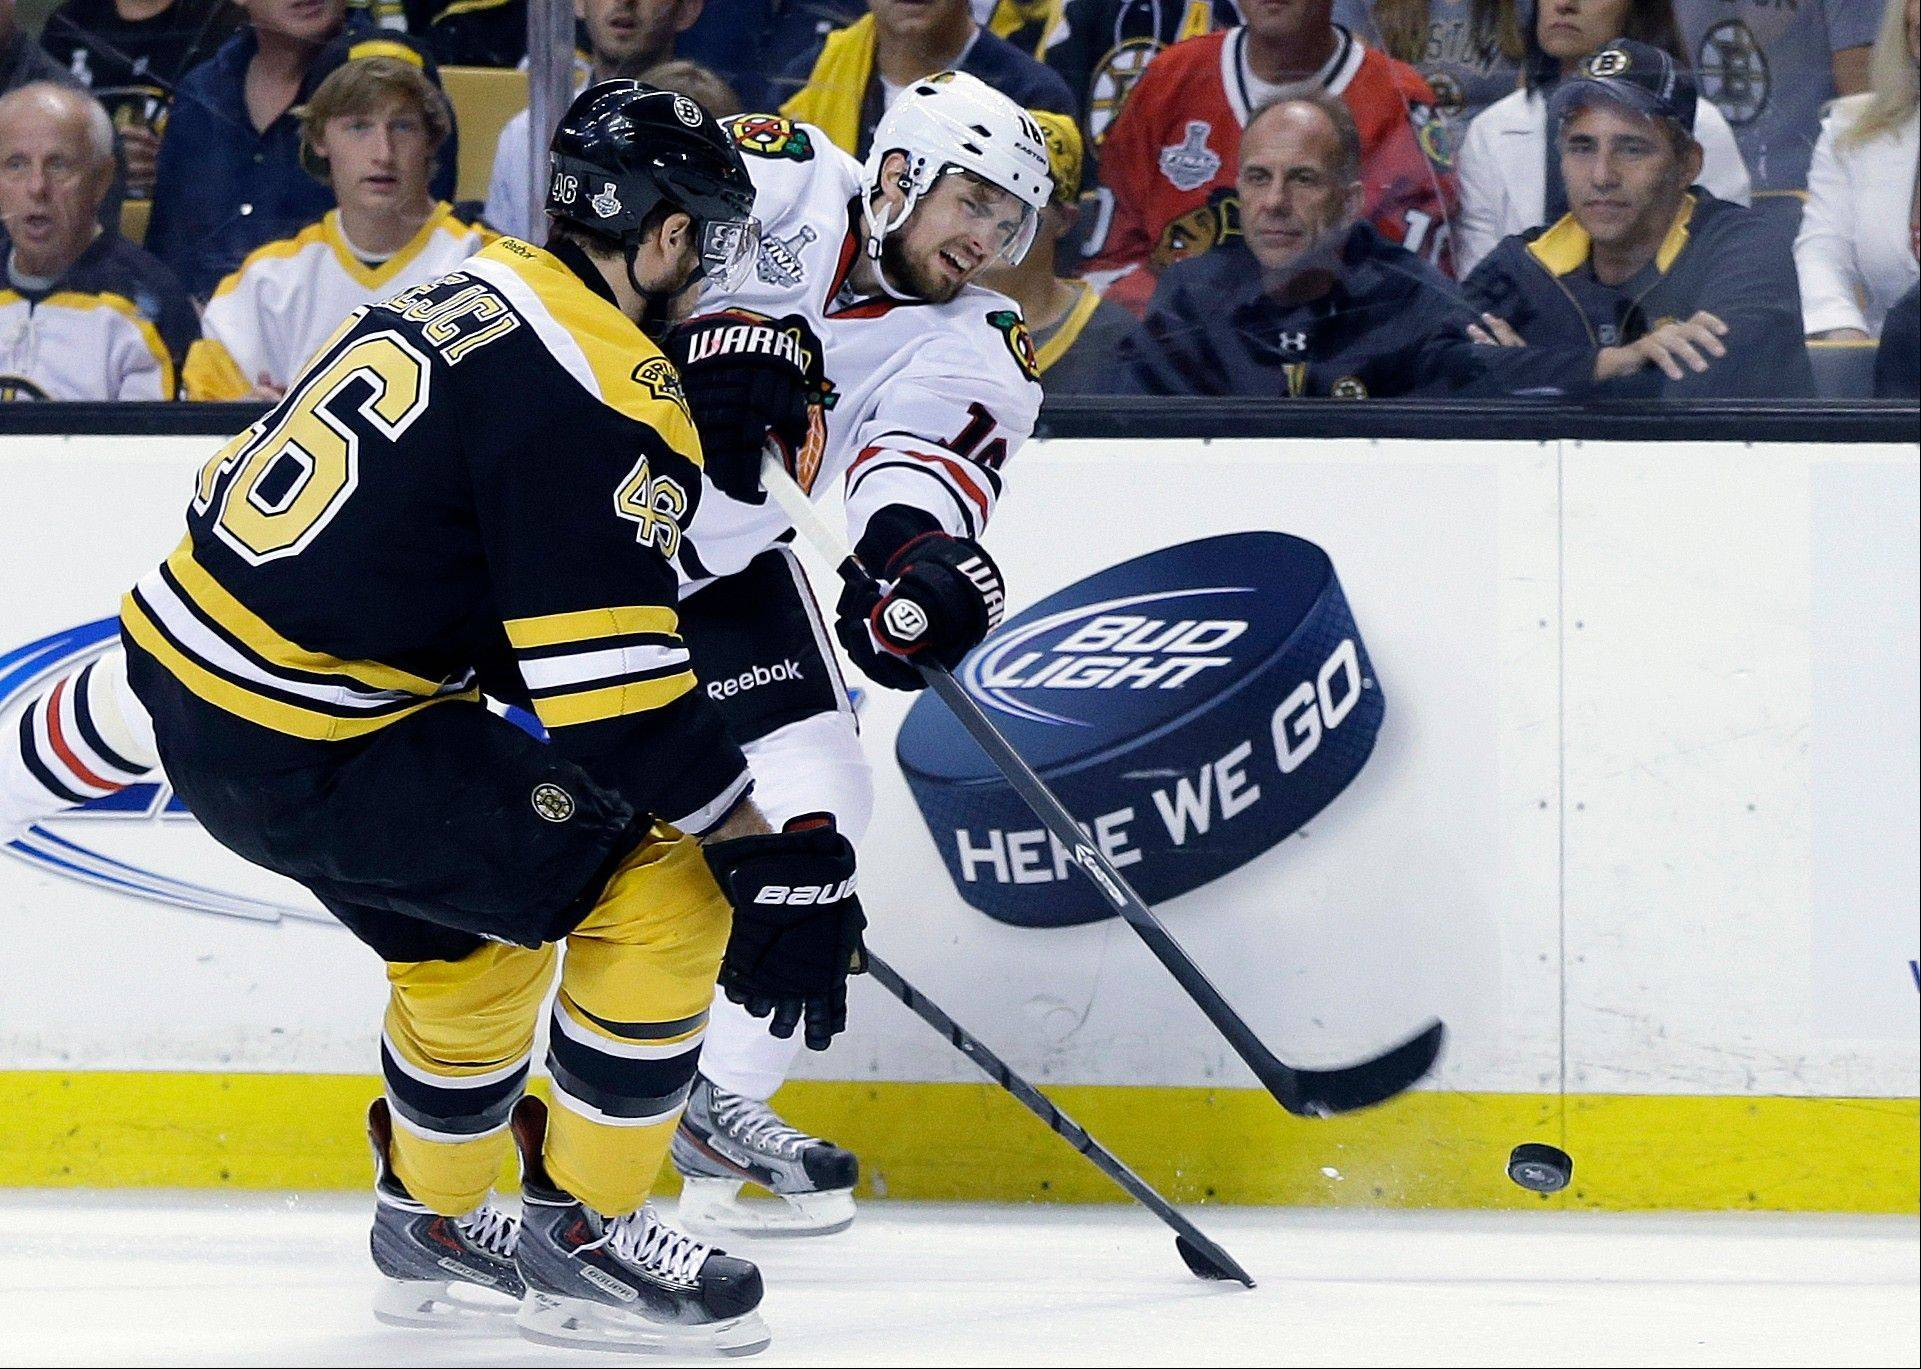 Chicago Blackhawks center Marcus Kruger, right, fires the puck past Boston Bruins center David Krejci (46), of the Czech Republic, during the first period in Game 3 of the NHL hockey Stanley Cup Finals.